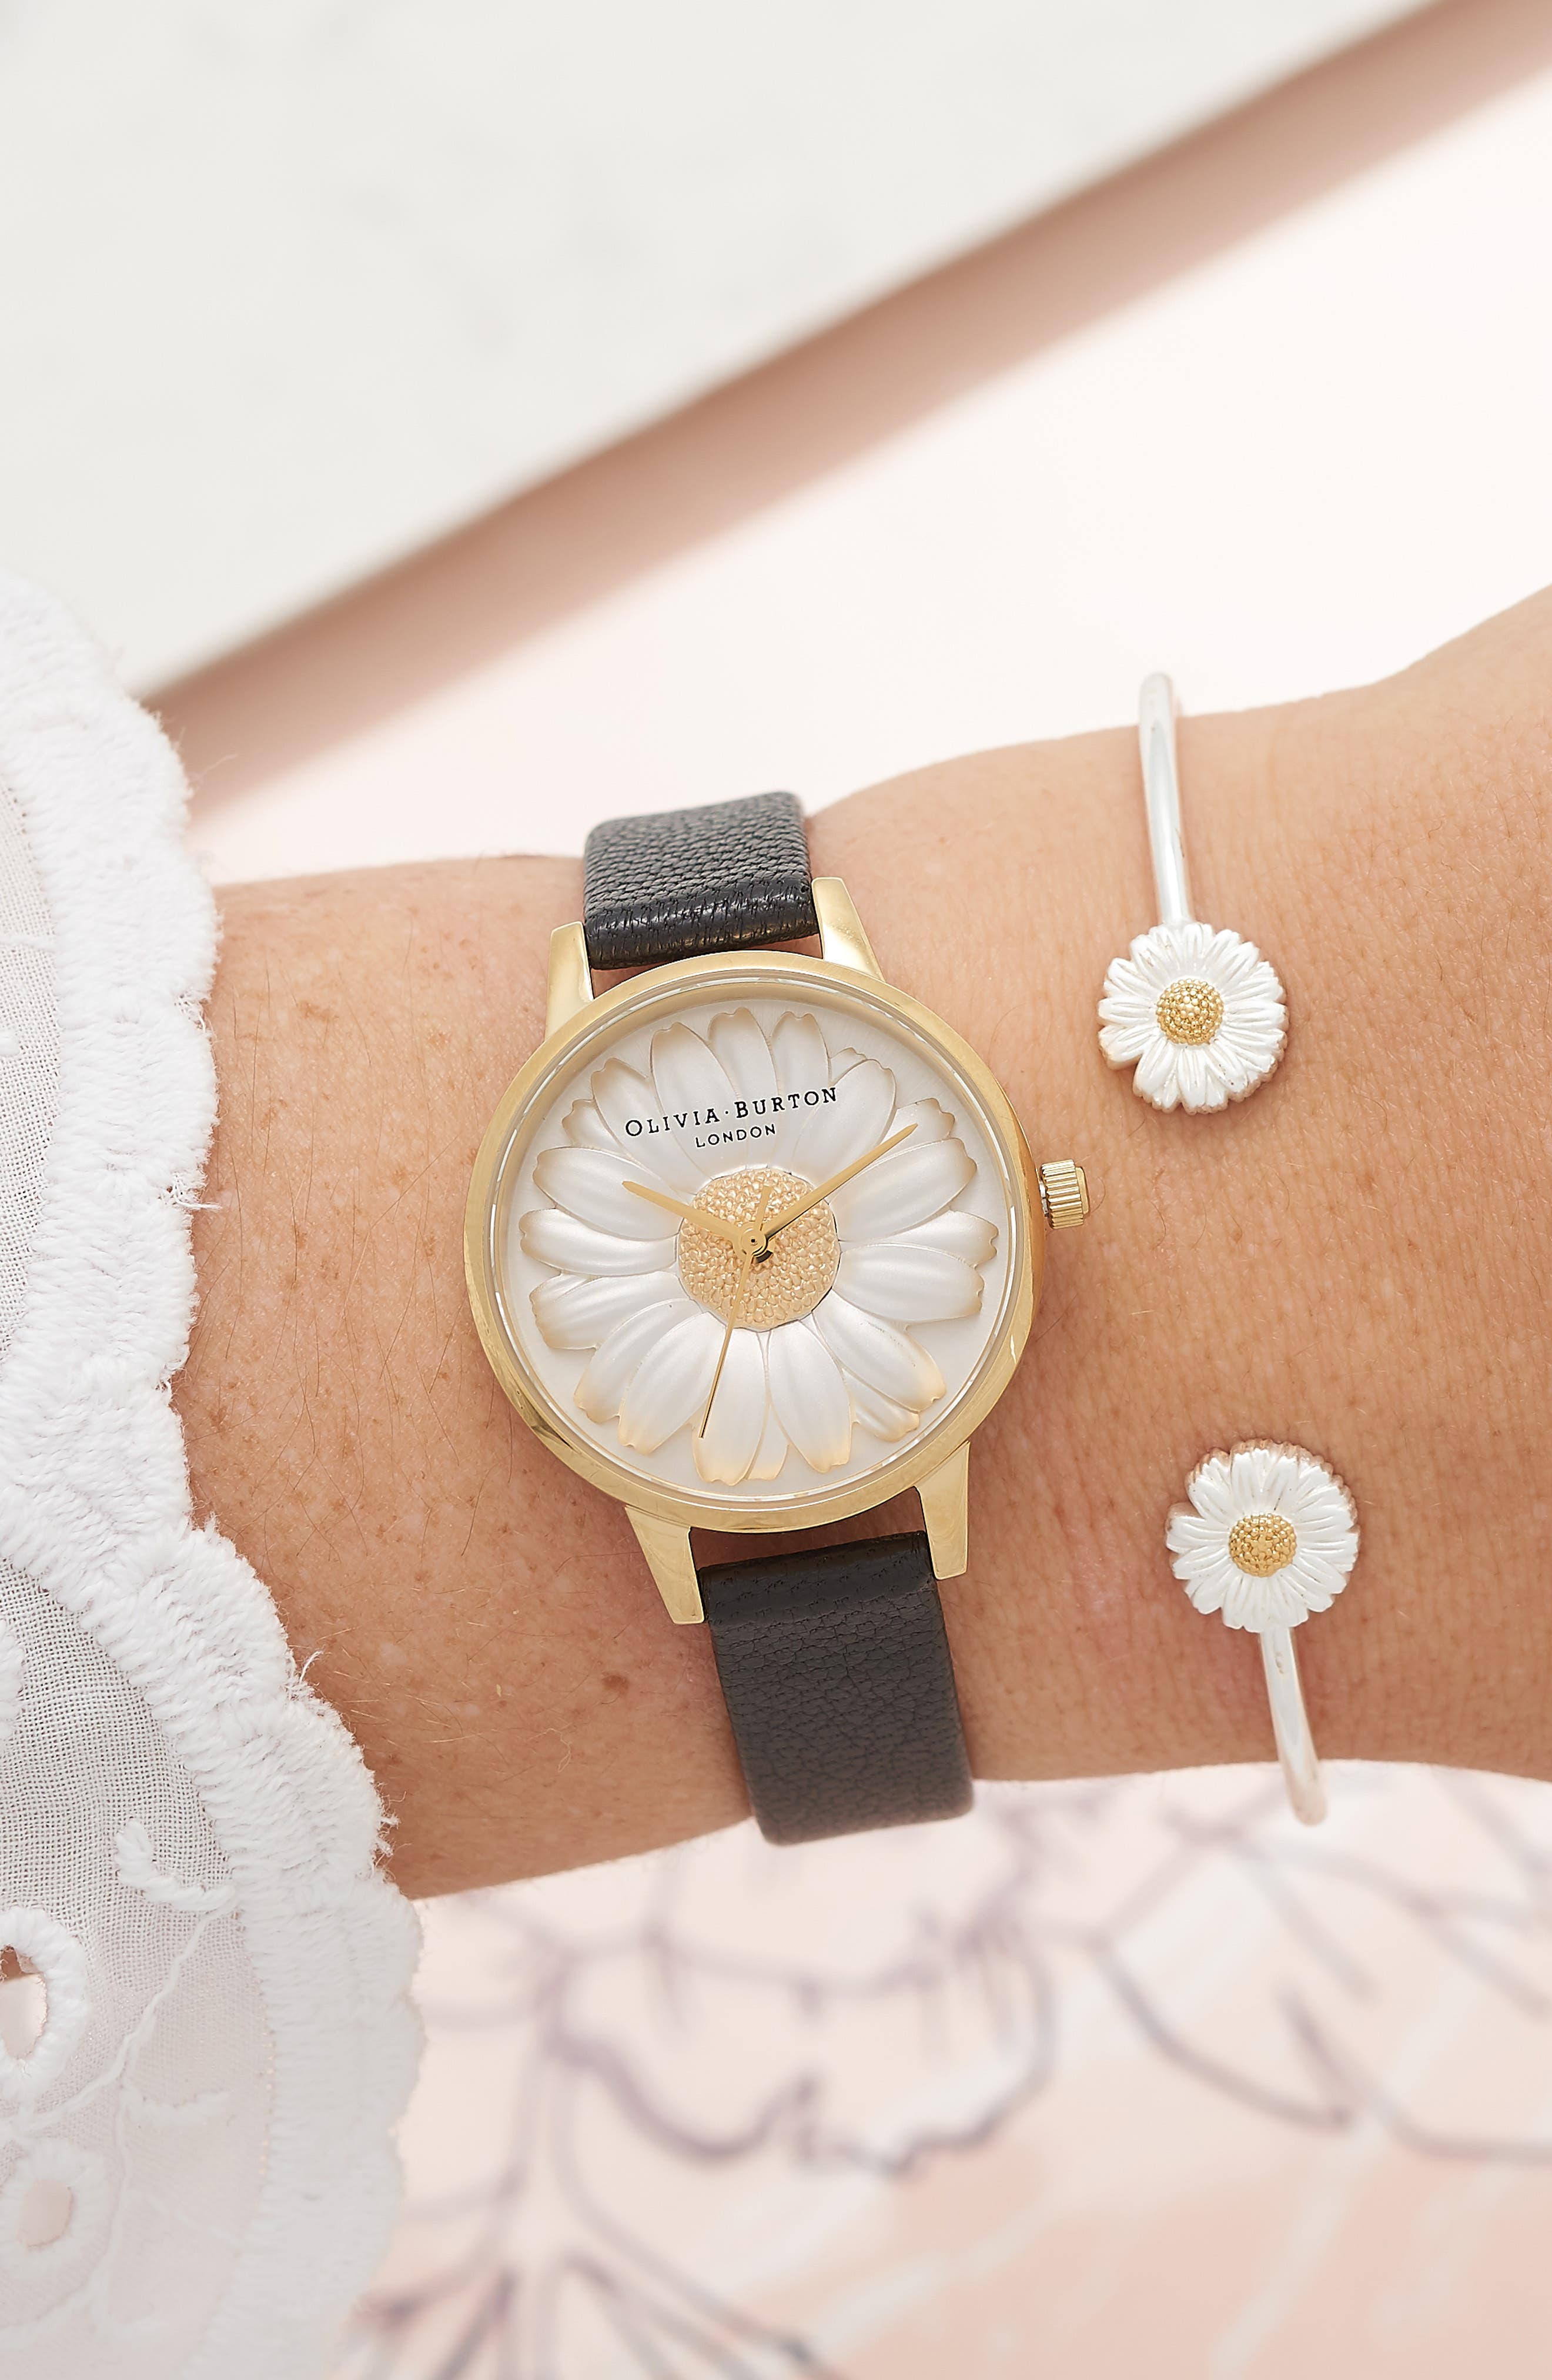 3D Daisy Leather Strap Watch, 30mm,                             Alternate thumbnail 9, color,                             001